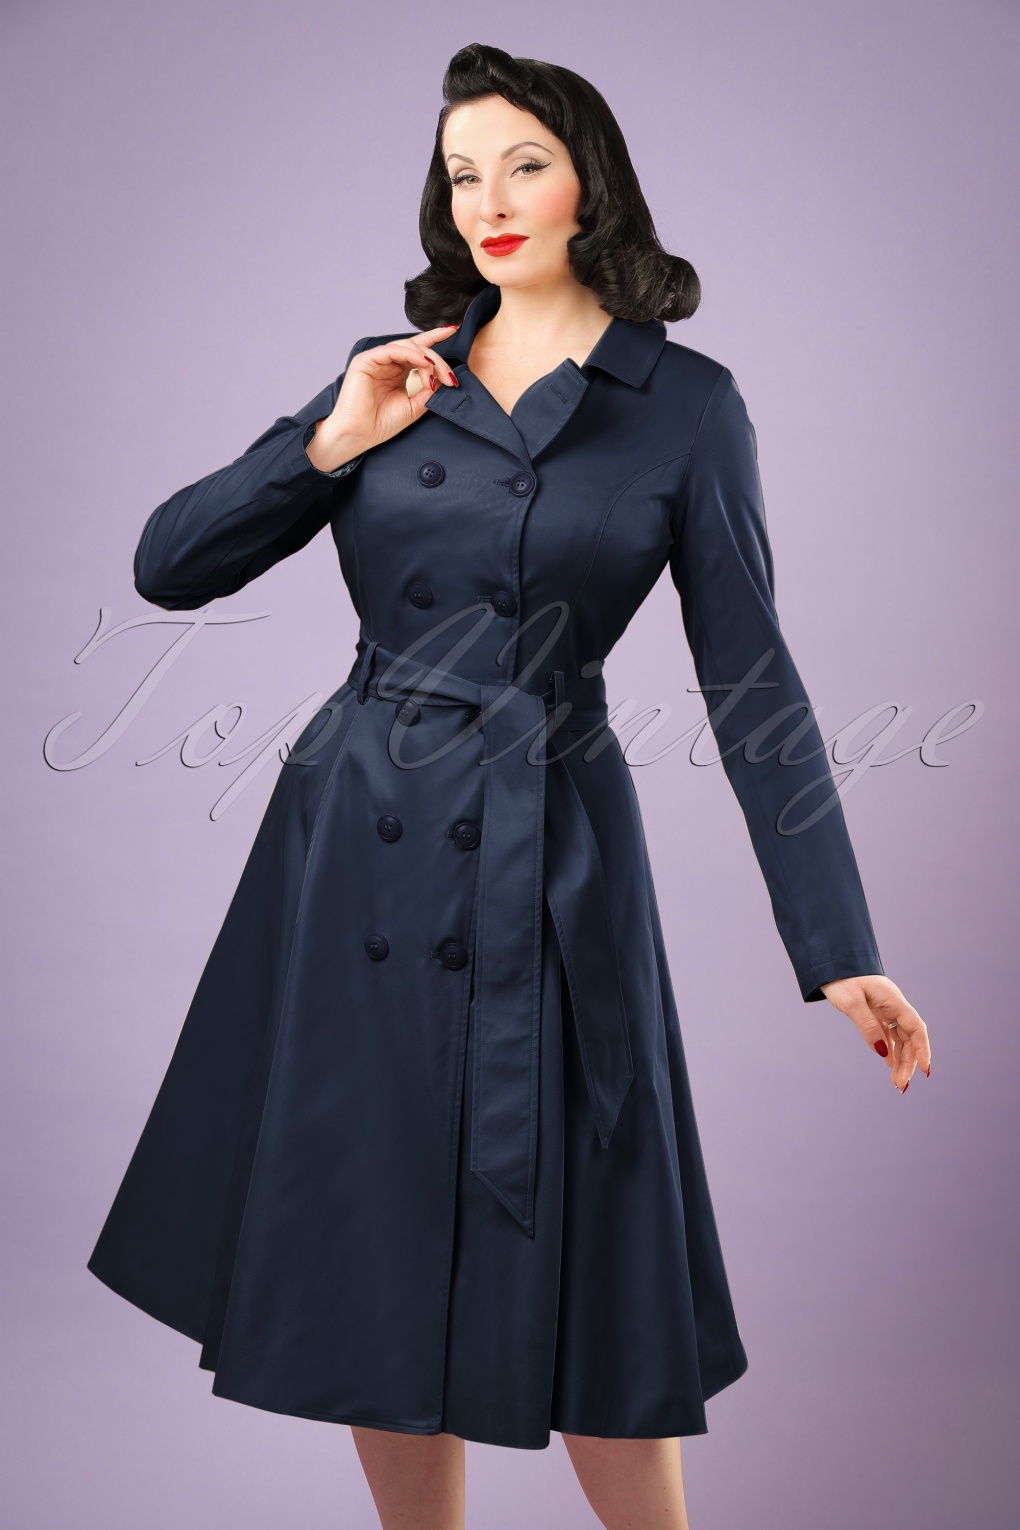 1950s Jackets, Coats, Bolero | Swing, Pin Up, Rockabilly 40s Korrina Swing Trench Coat in Navy £128.62 AT vintagedancer.com